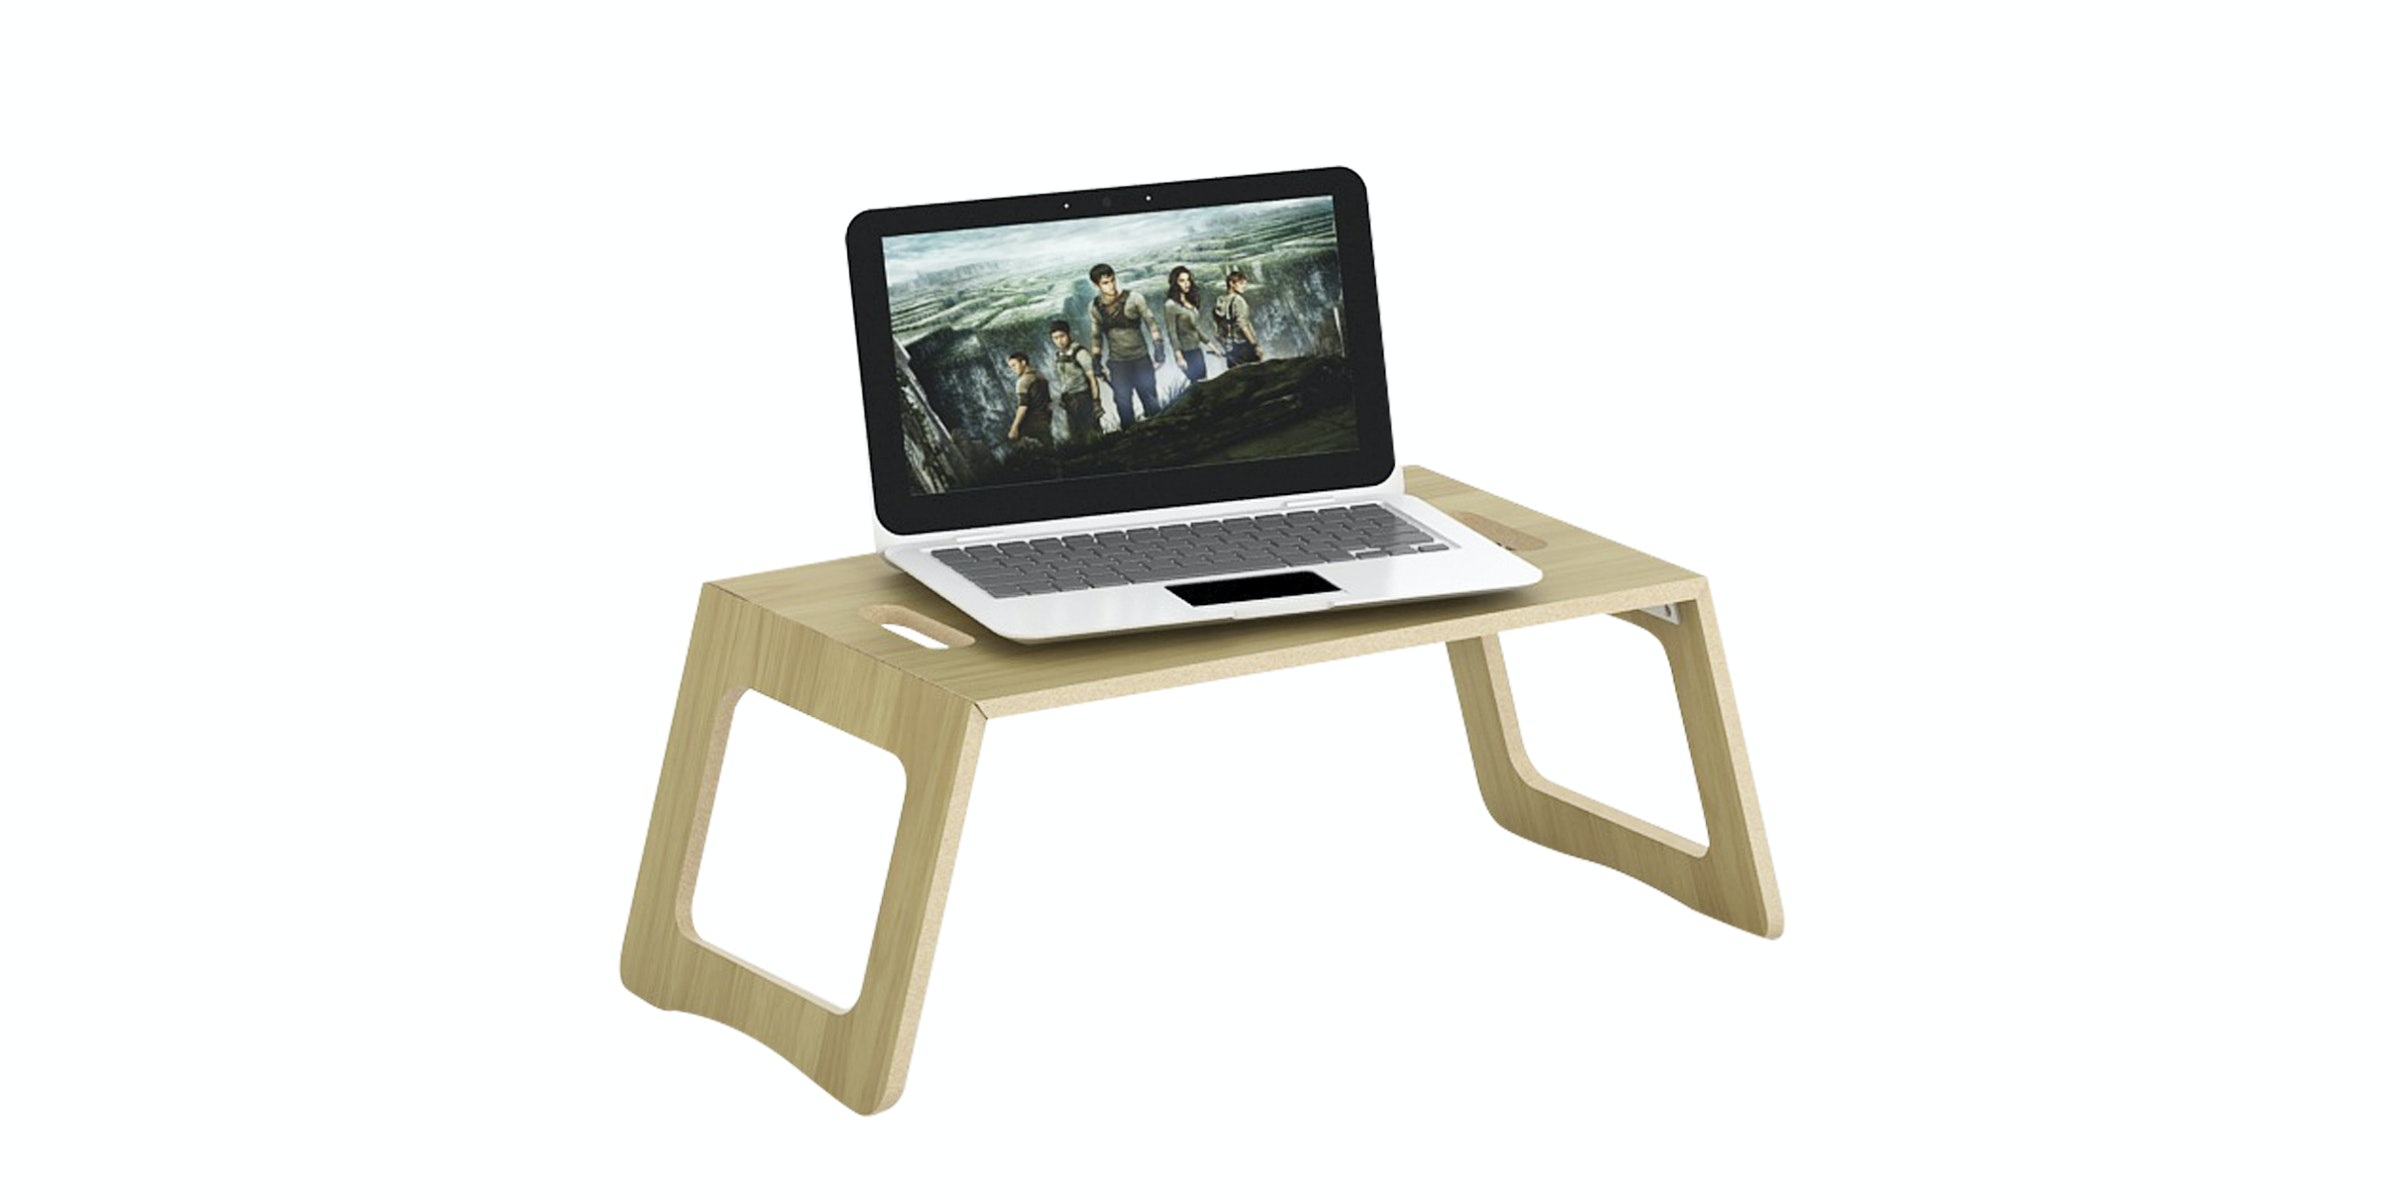 JYSK Laptop Support ELI 29X60 cm Euro Oak